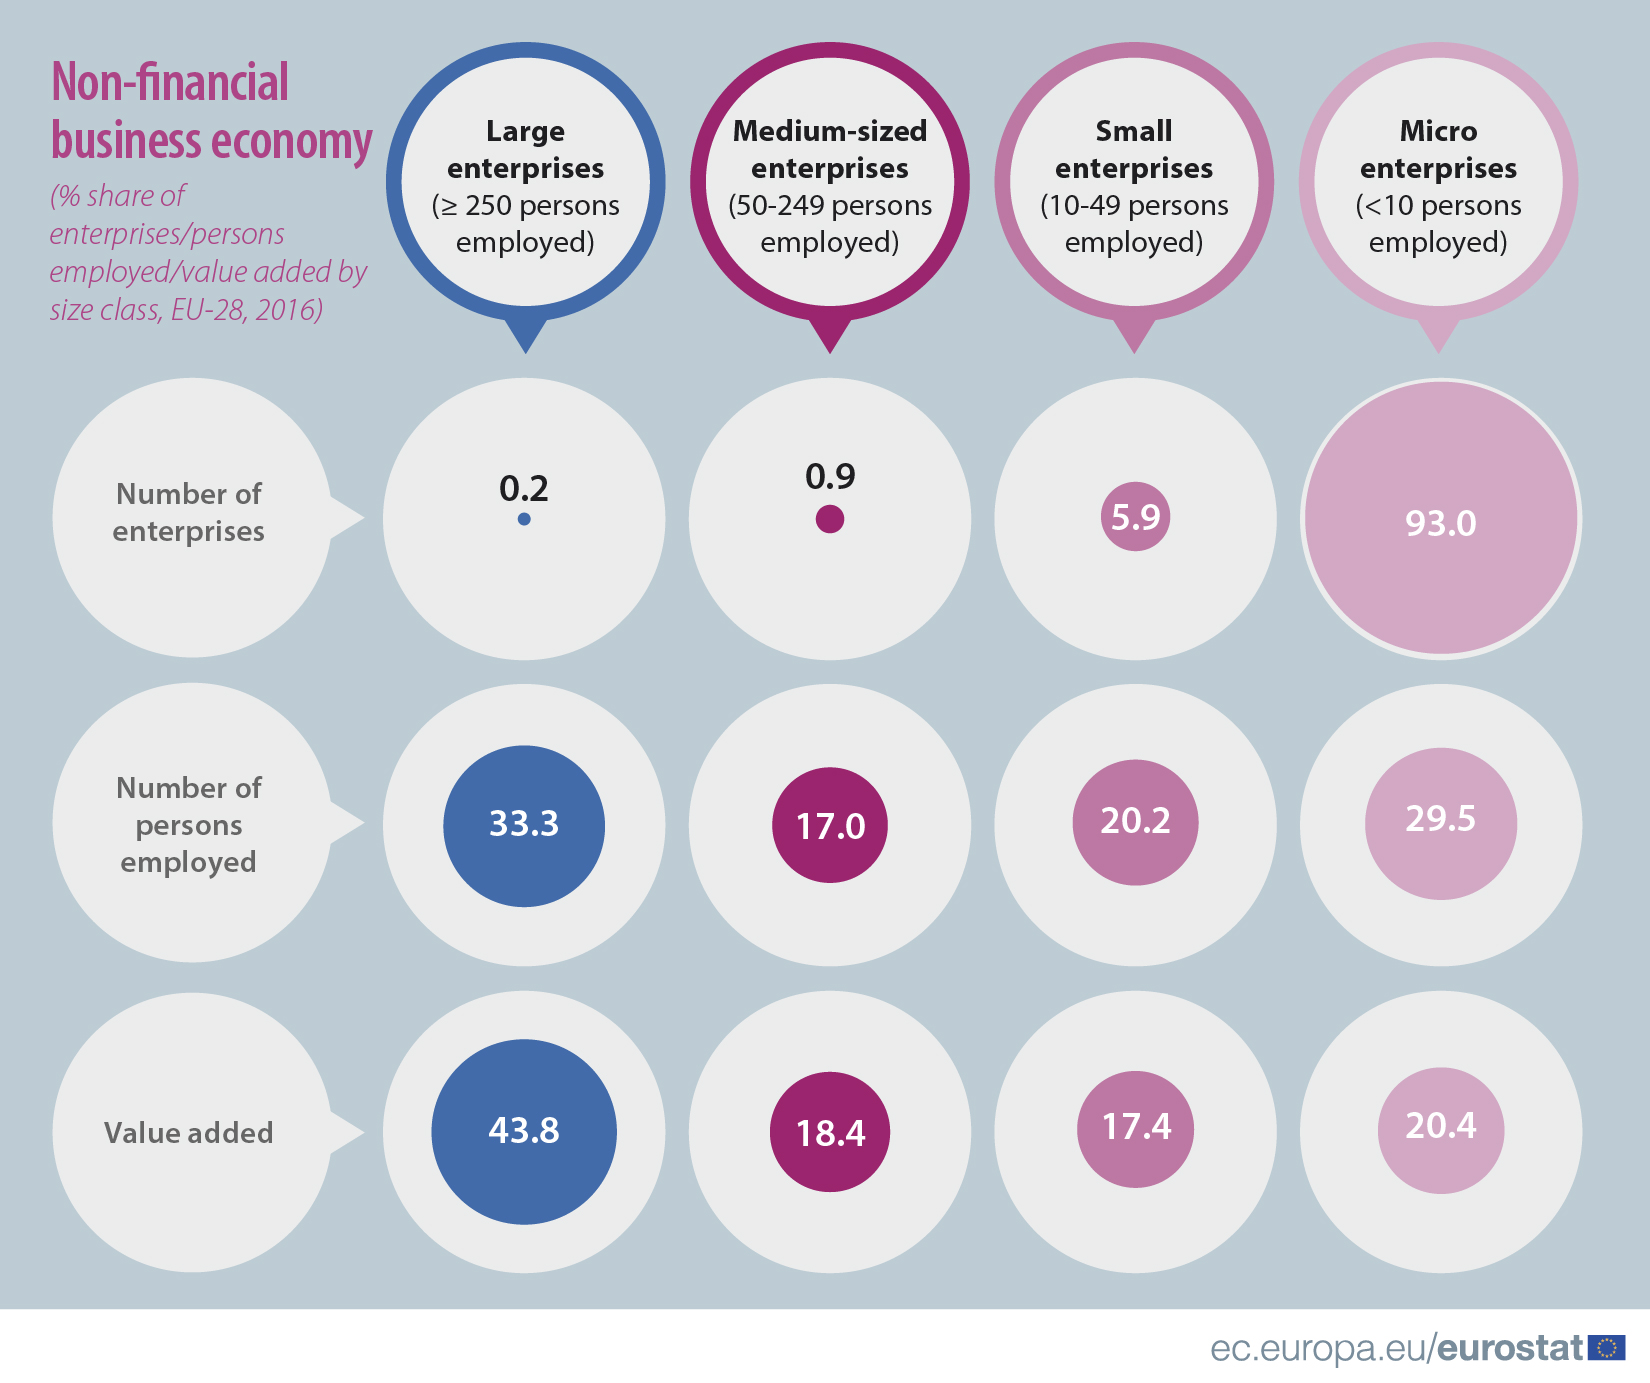 Non-financial business economy by size class, 2016 overview